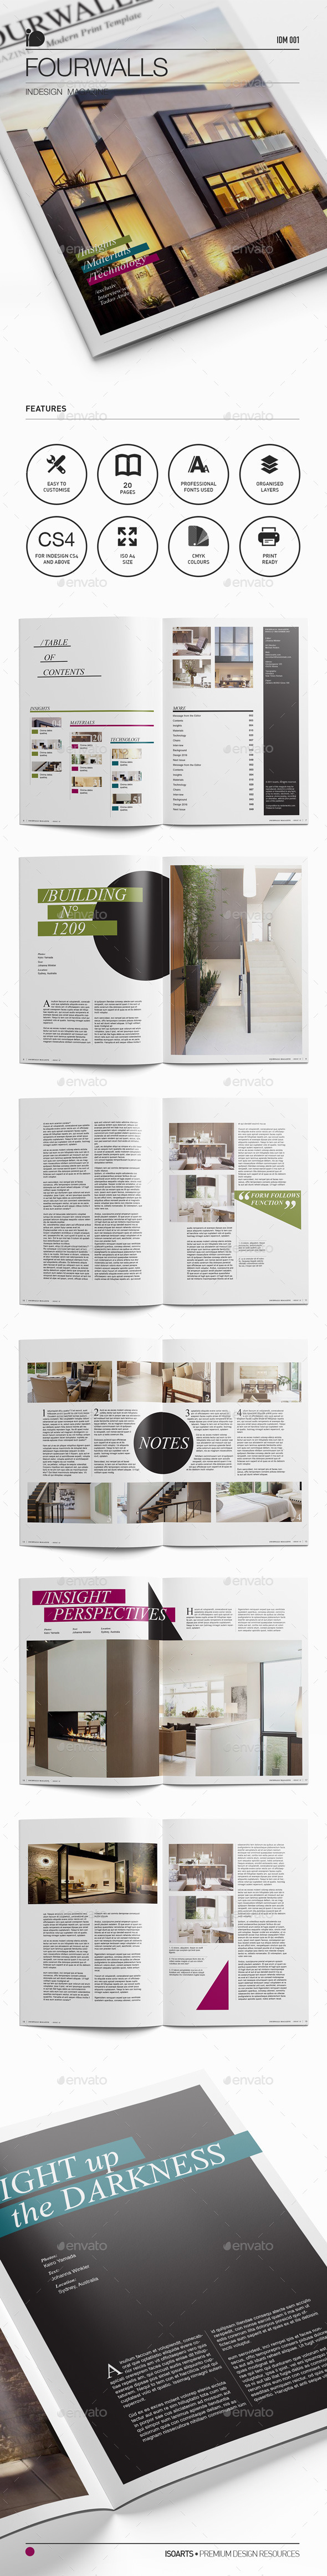 Magazine Template • Fourwalls - Magazines Print Templates